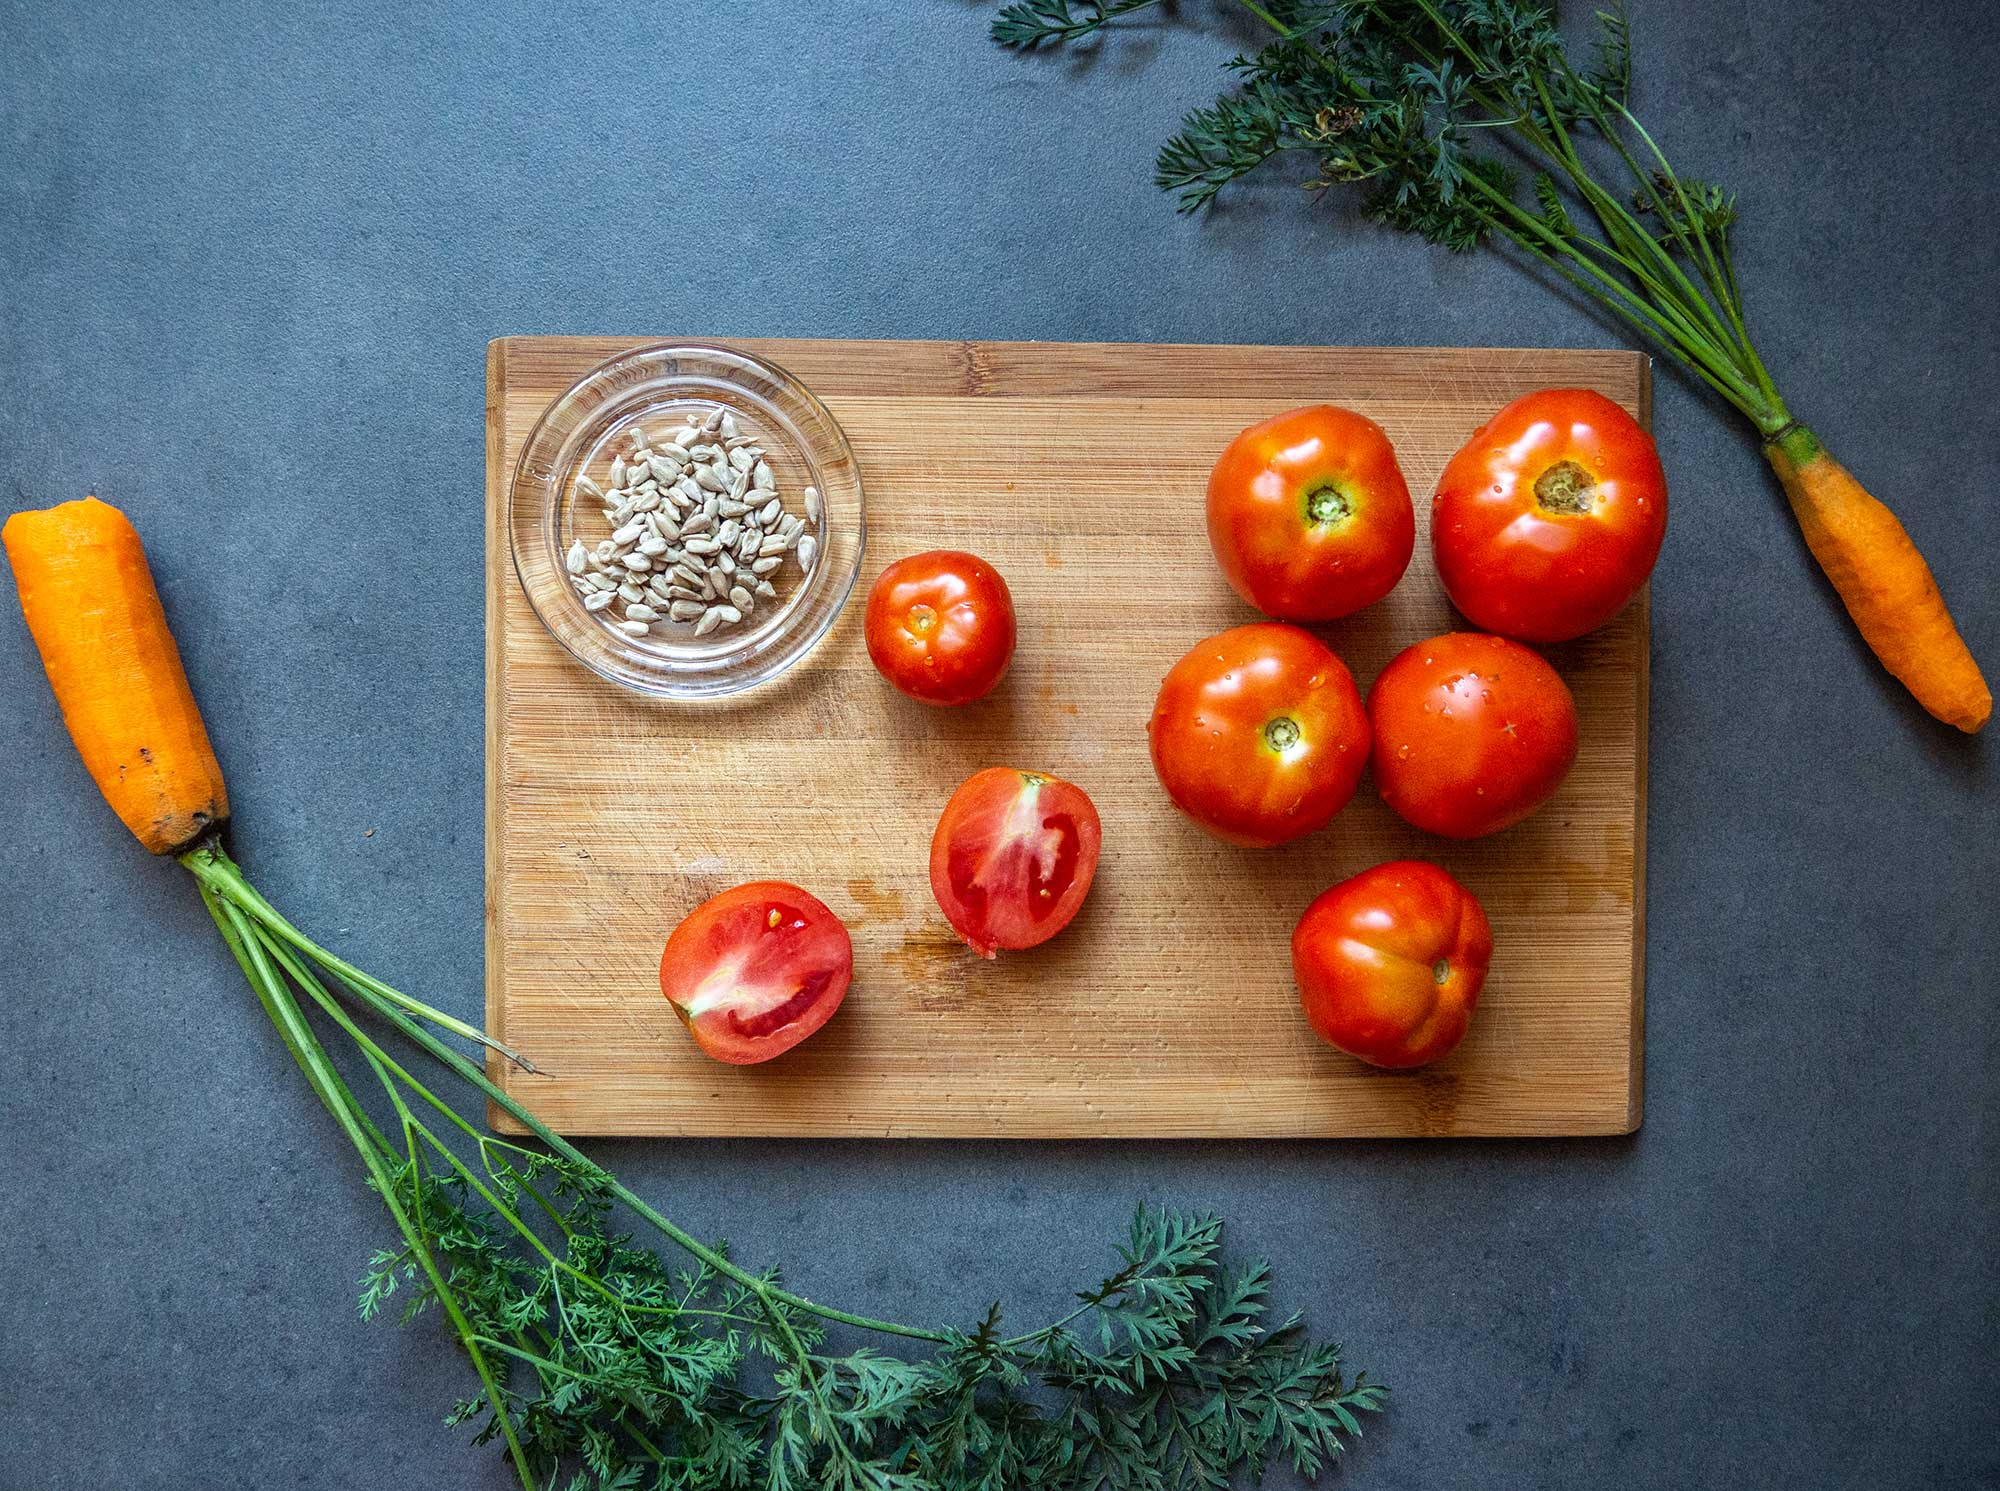 tomatoes and carrots used in diet plan